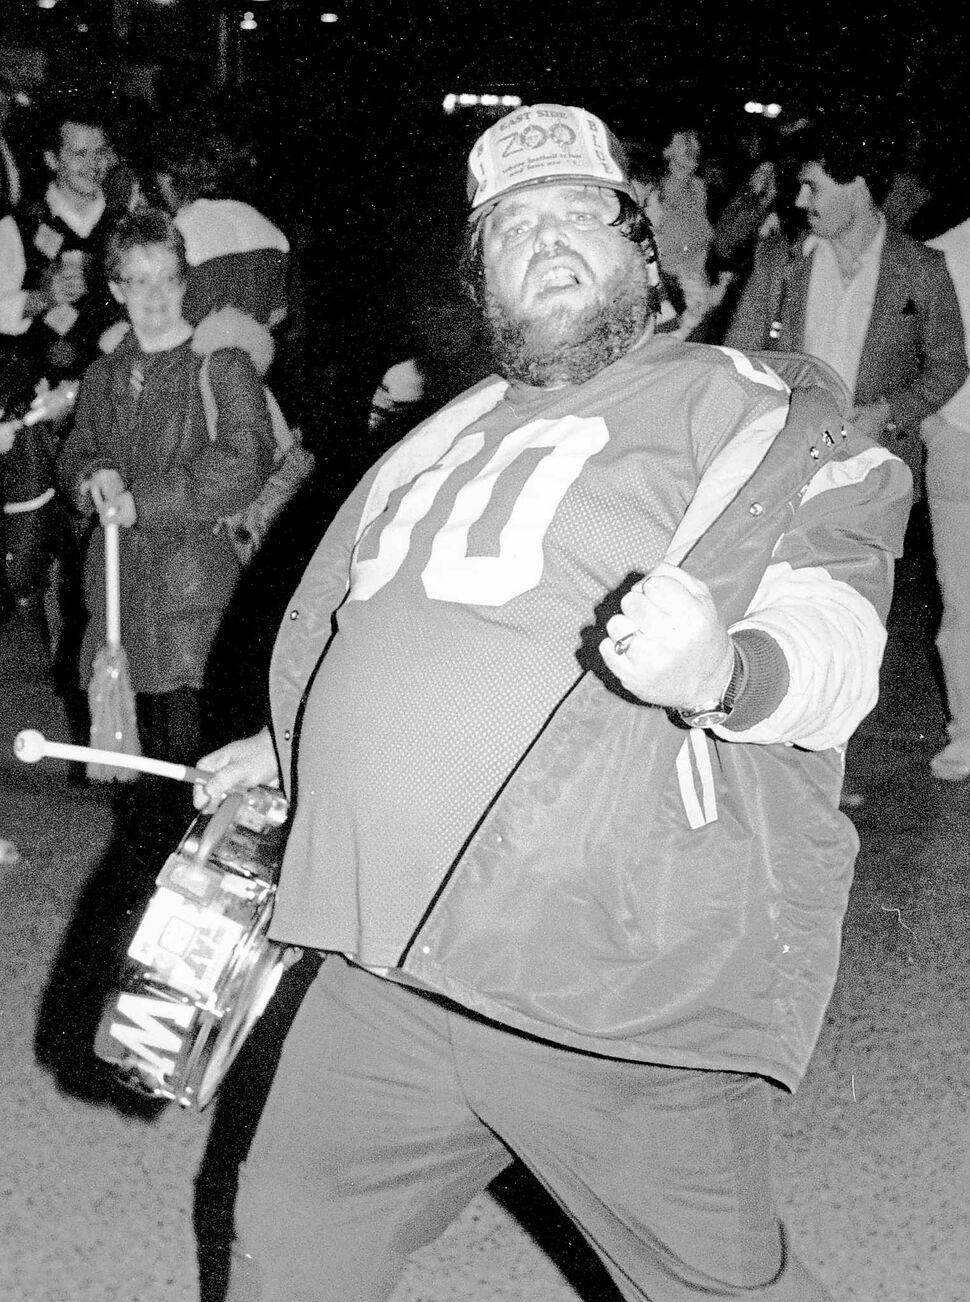 Jack Skelley at a pep rally for the Bombers in 1984. The Blue Bombers defeated the Tiger-Cats in a 47–17 victory. (KEN GIGLIOTTI / WINNIPEG FREE PRESS ARCHIVES)